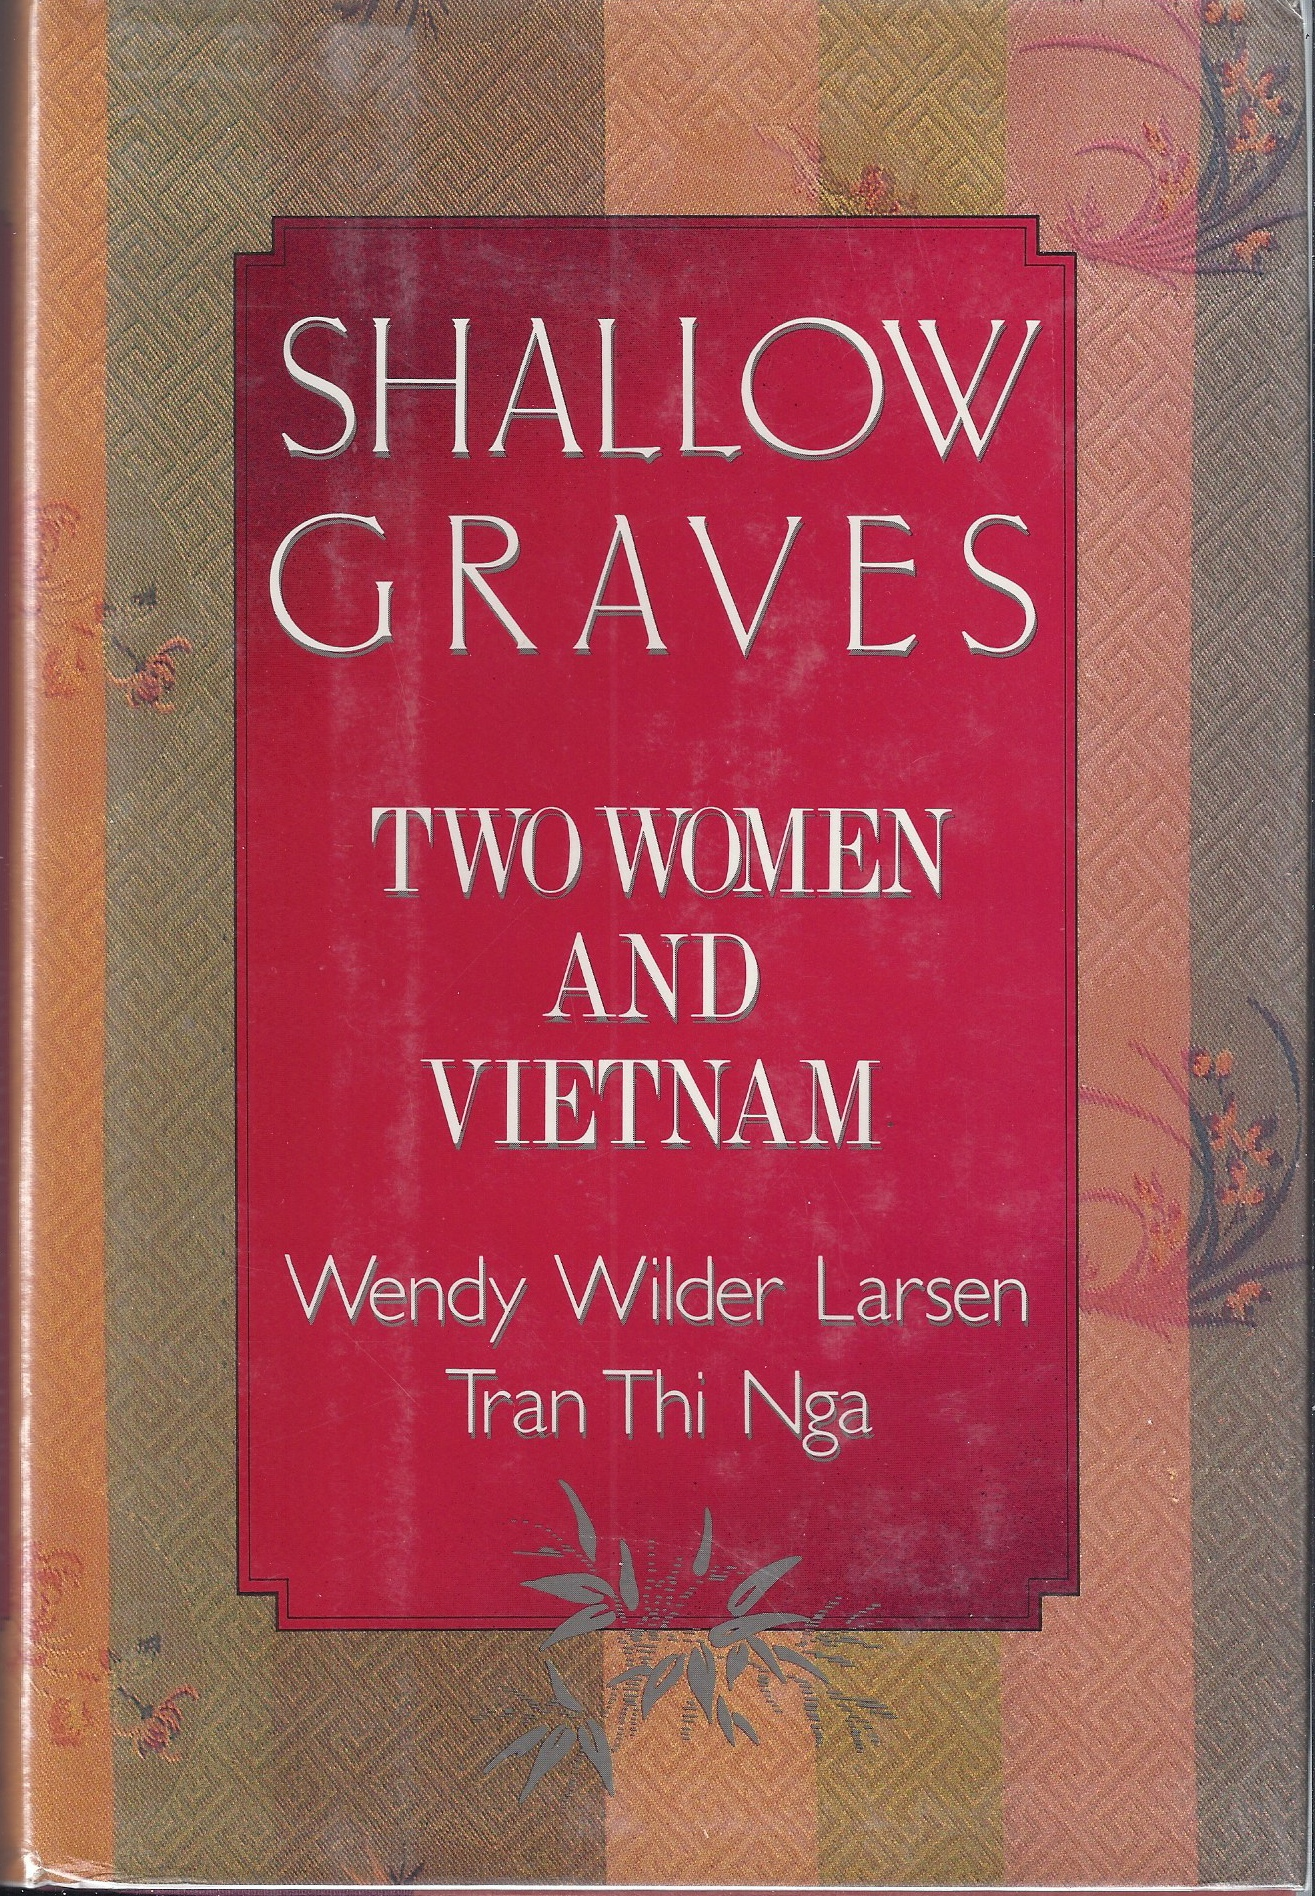 Image for Shallow Graves: Two Women and Vietnam